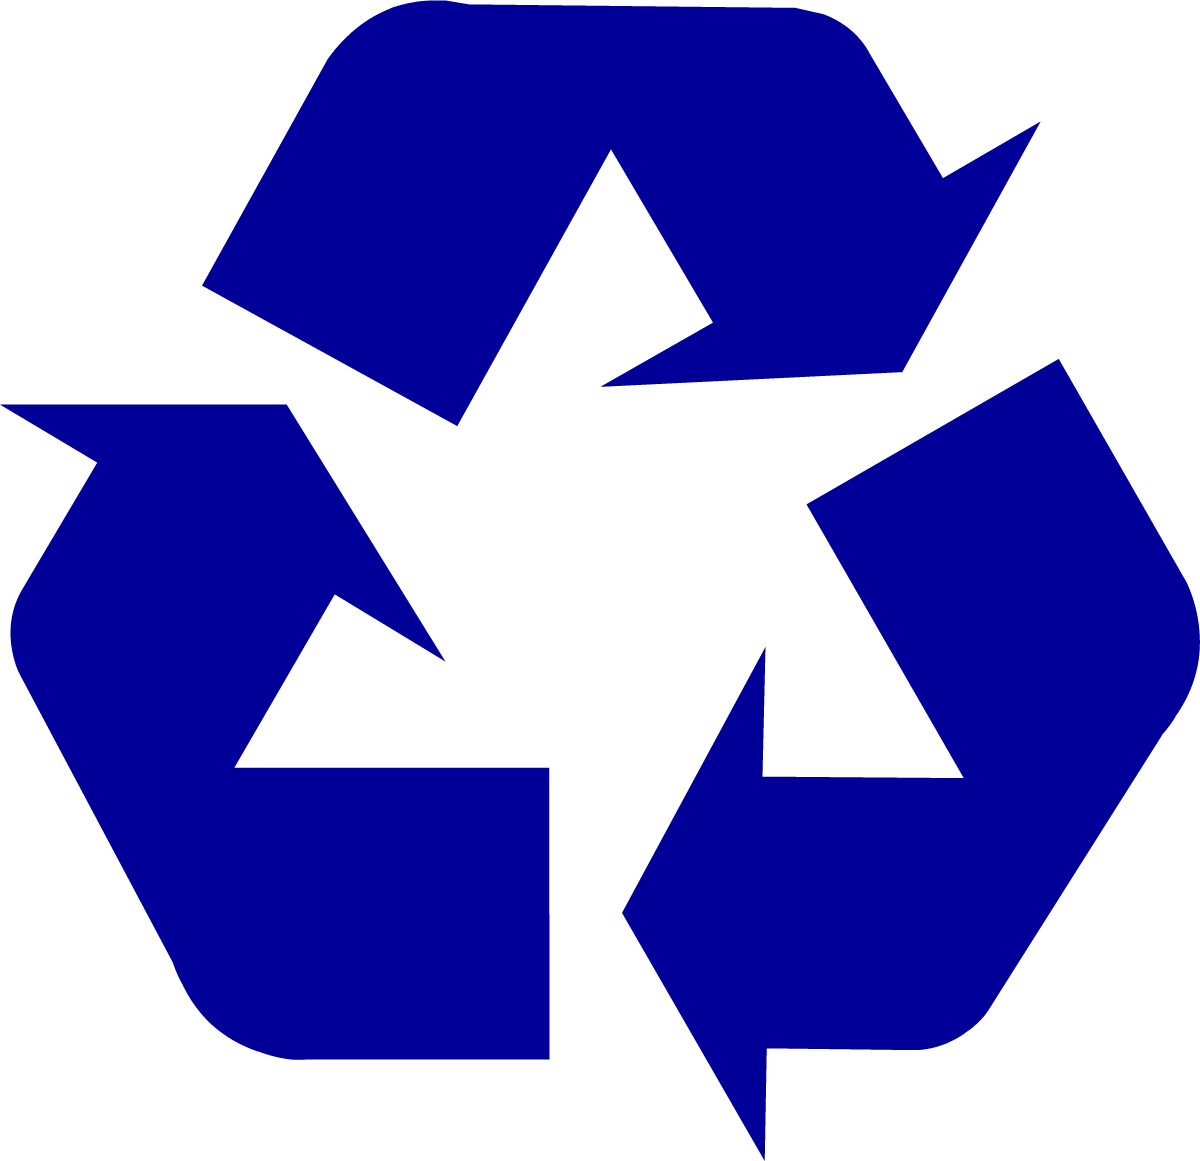 recycling-symbol-icon-solid-dark-blue.png